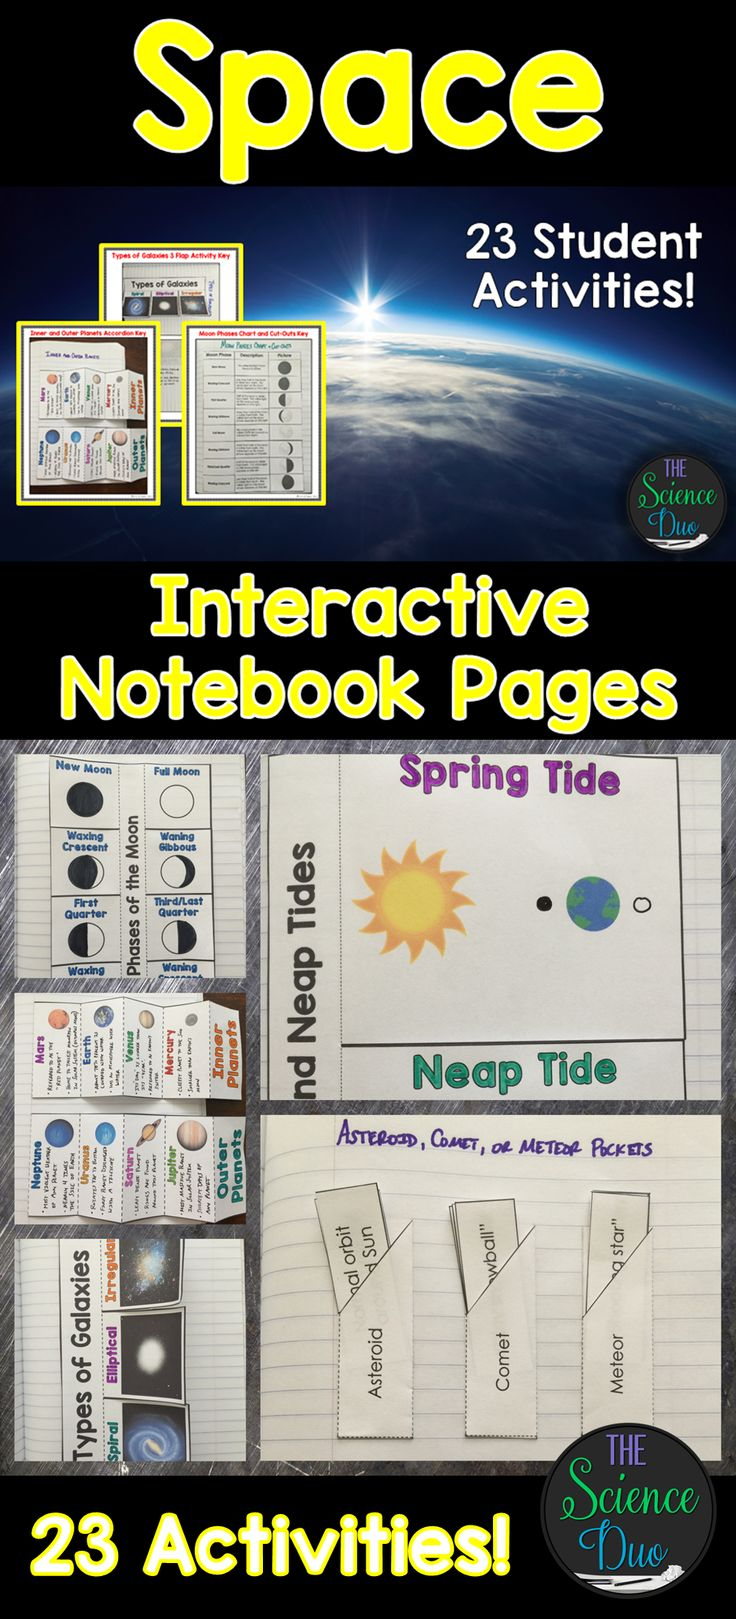 Bring engaging and interactive activities into your classroom with these science notebook pages. This resource contains 23 different interactive notebook activities covering galaxies, lunar cycle and moon phases, tides, eclipses, solar system, seasons, and much more!